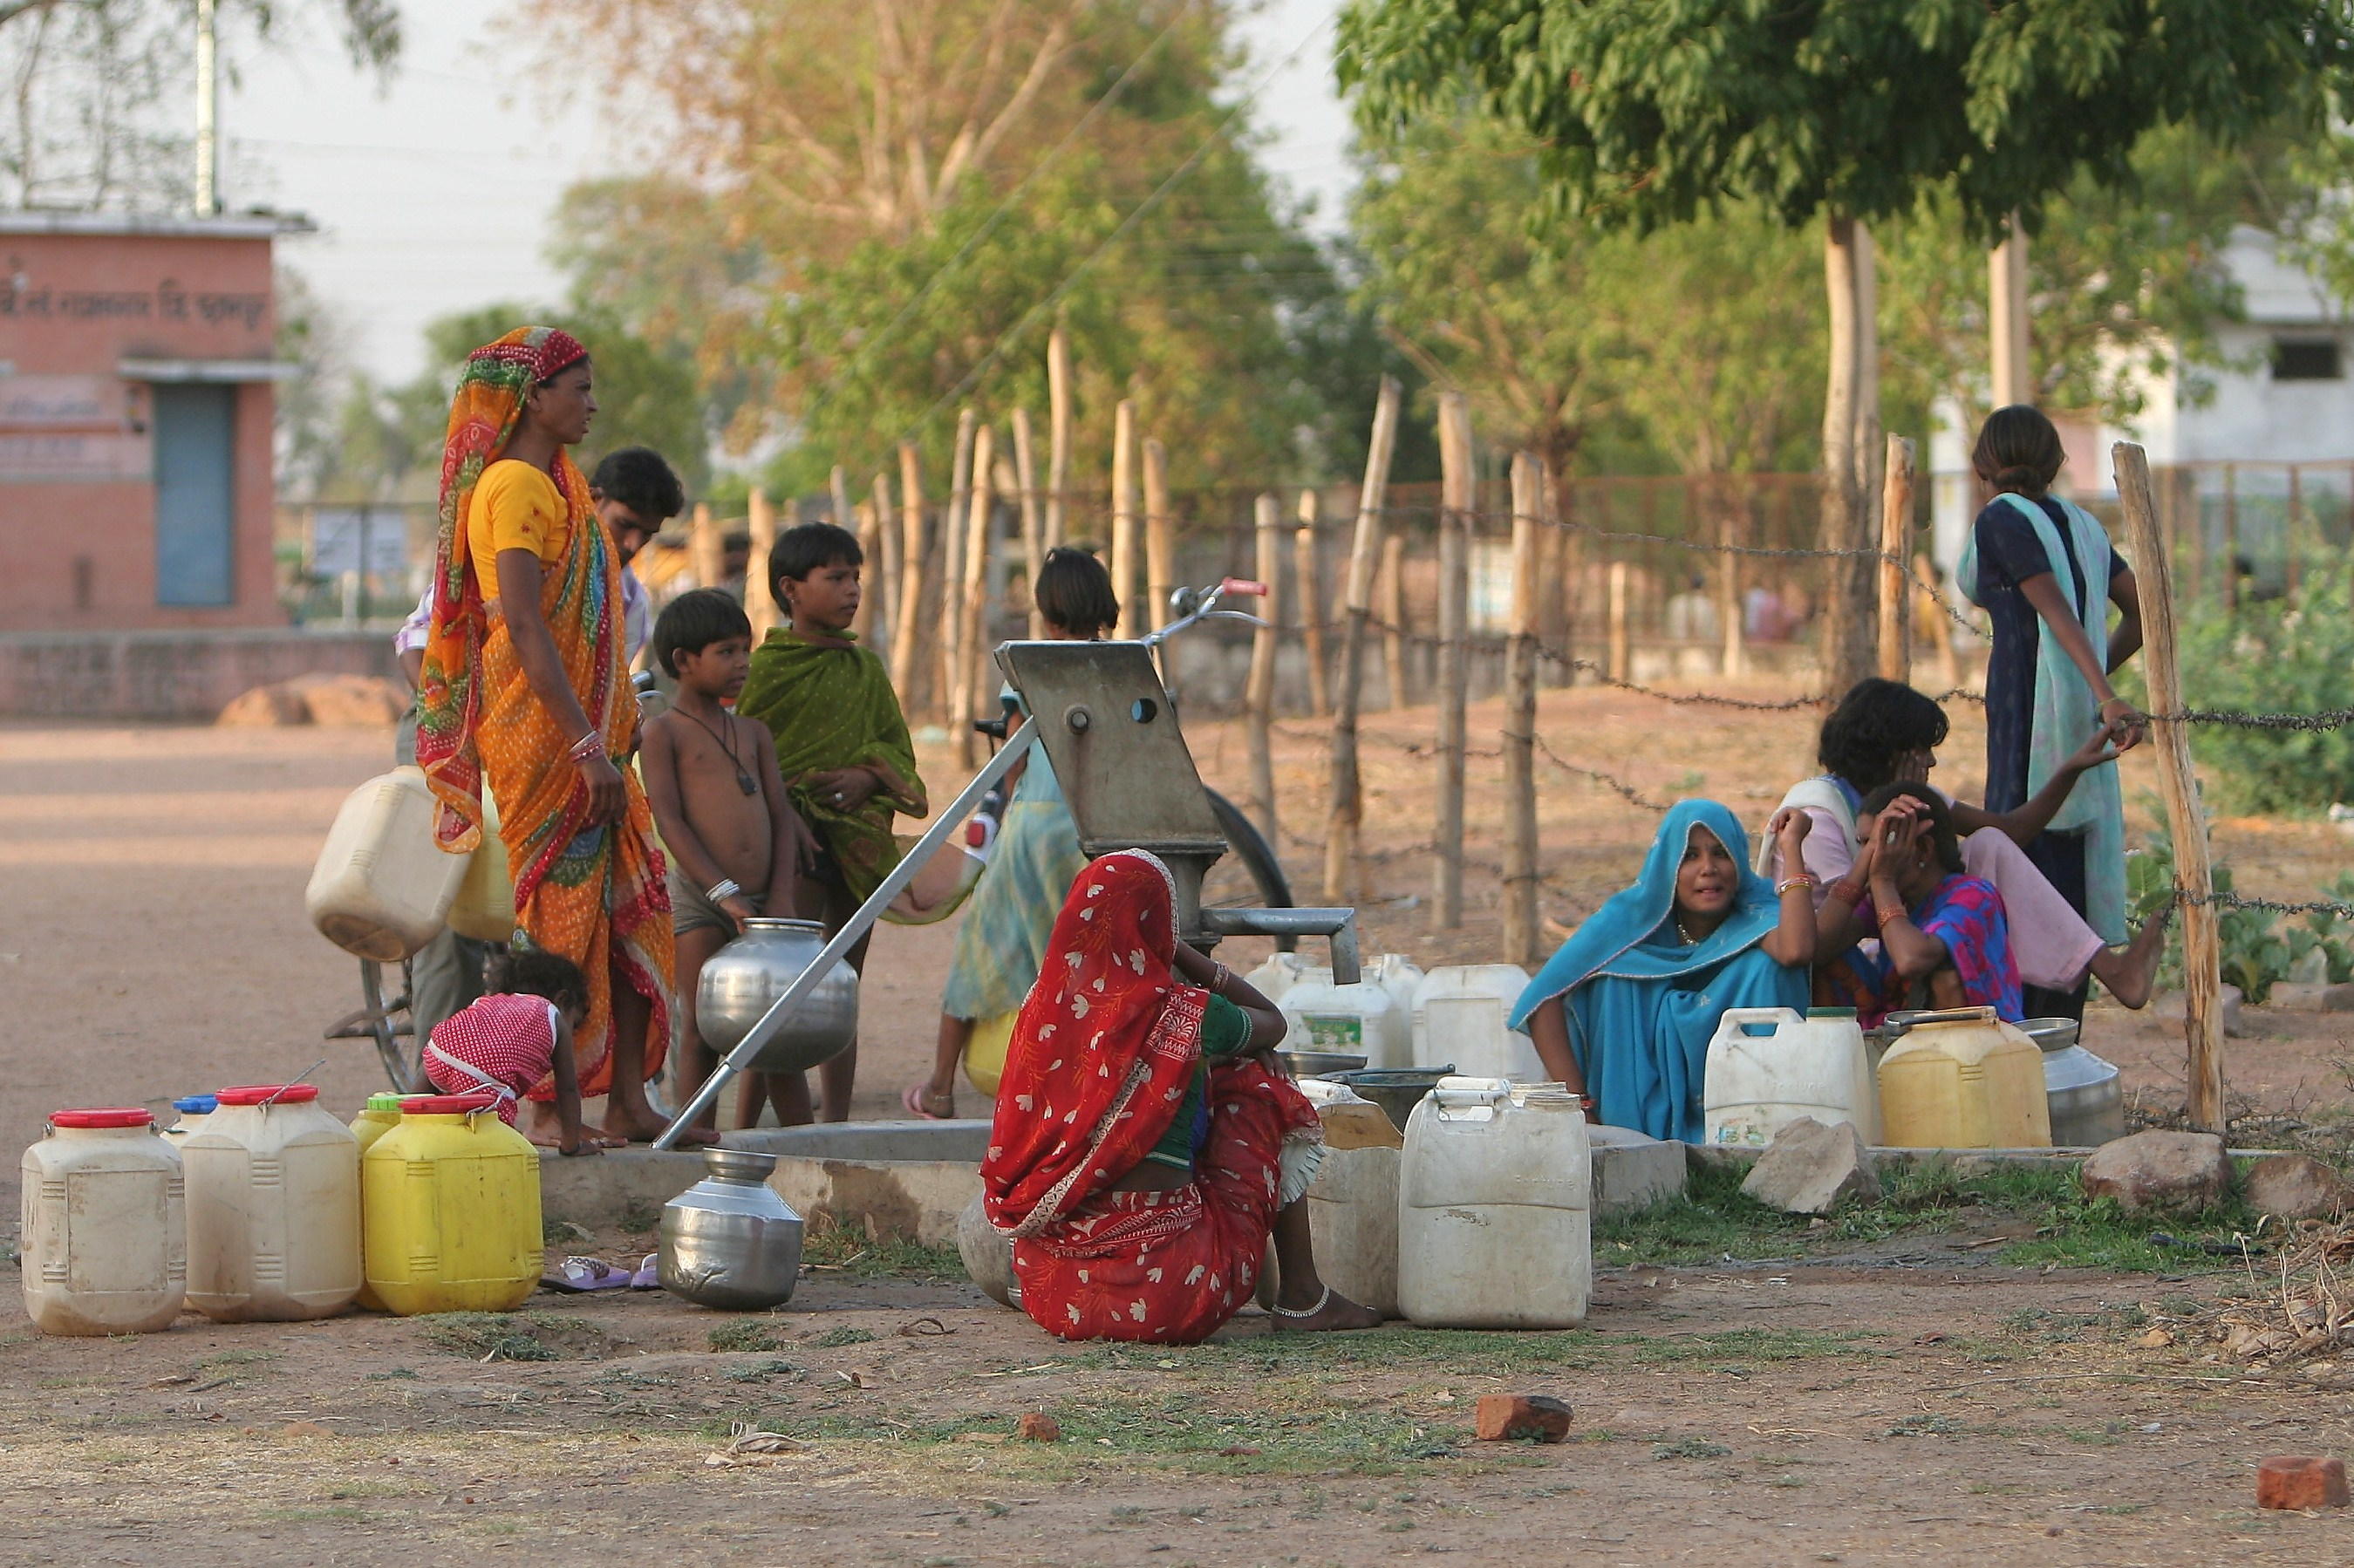 von Department of Foreign Affairs and Trade (Collecting water, Rajastan) [CC BY 2.0 (http://creativecommons.org/licenses/by/2.0)], via Wikimedia Commons